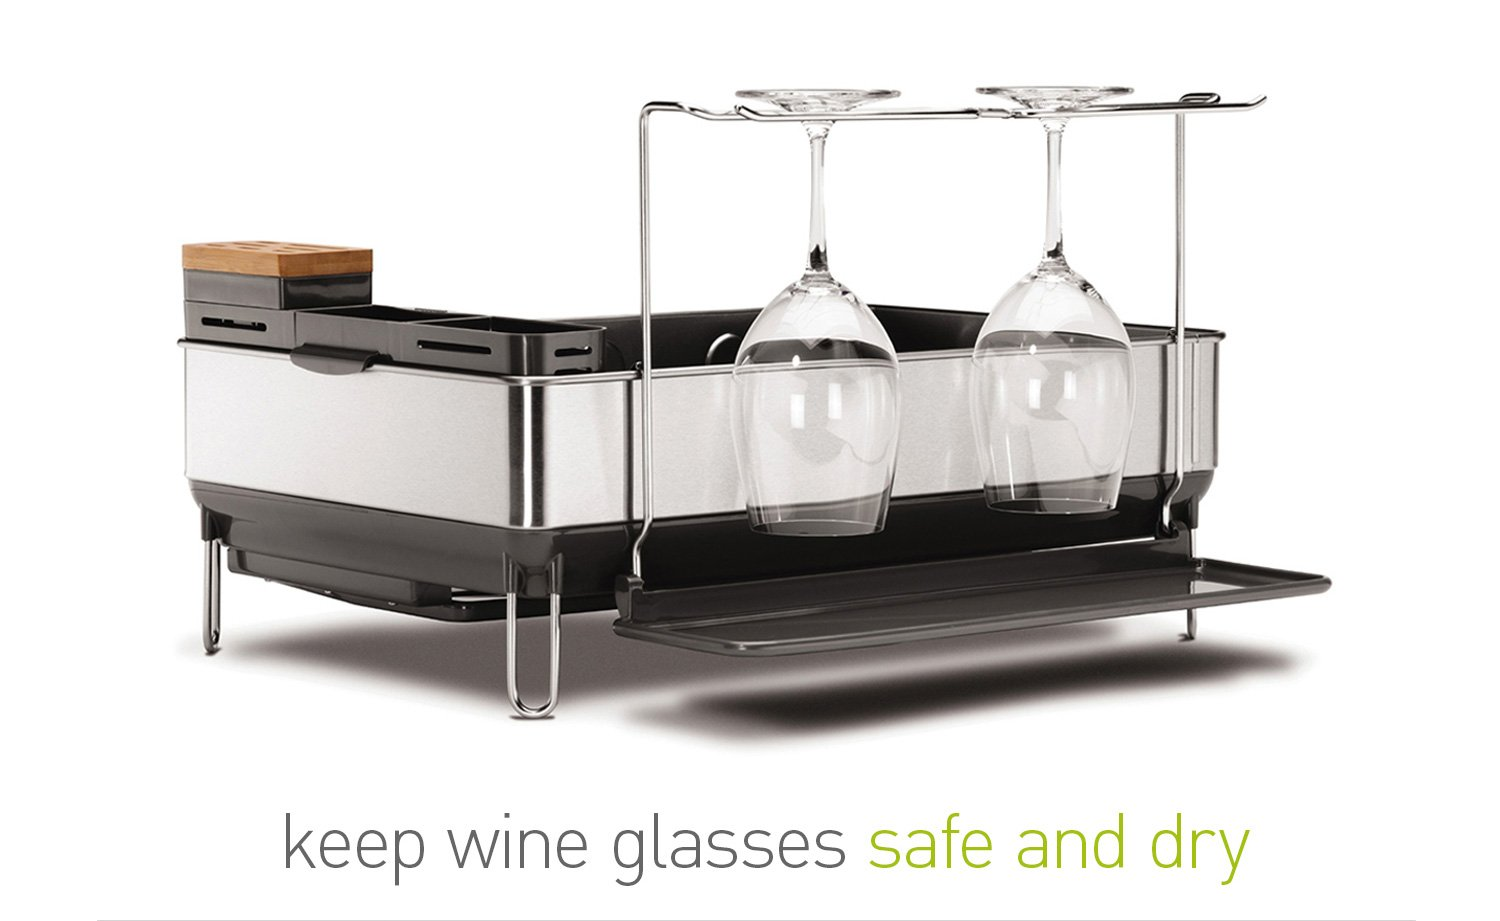 keep wine glasses safe and dry